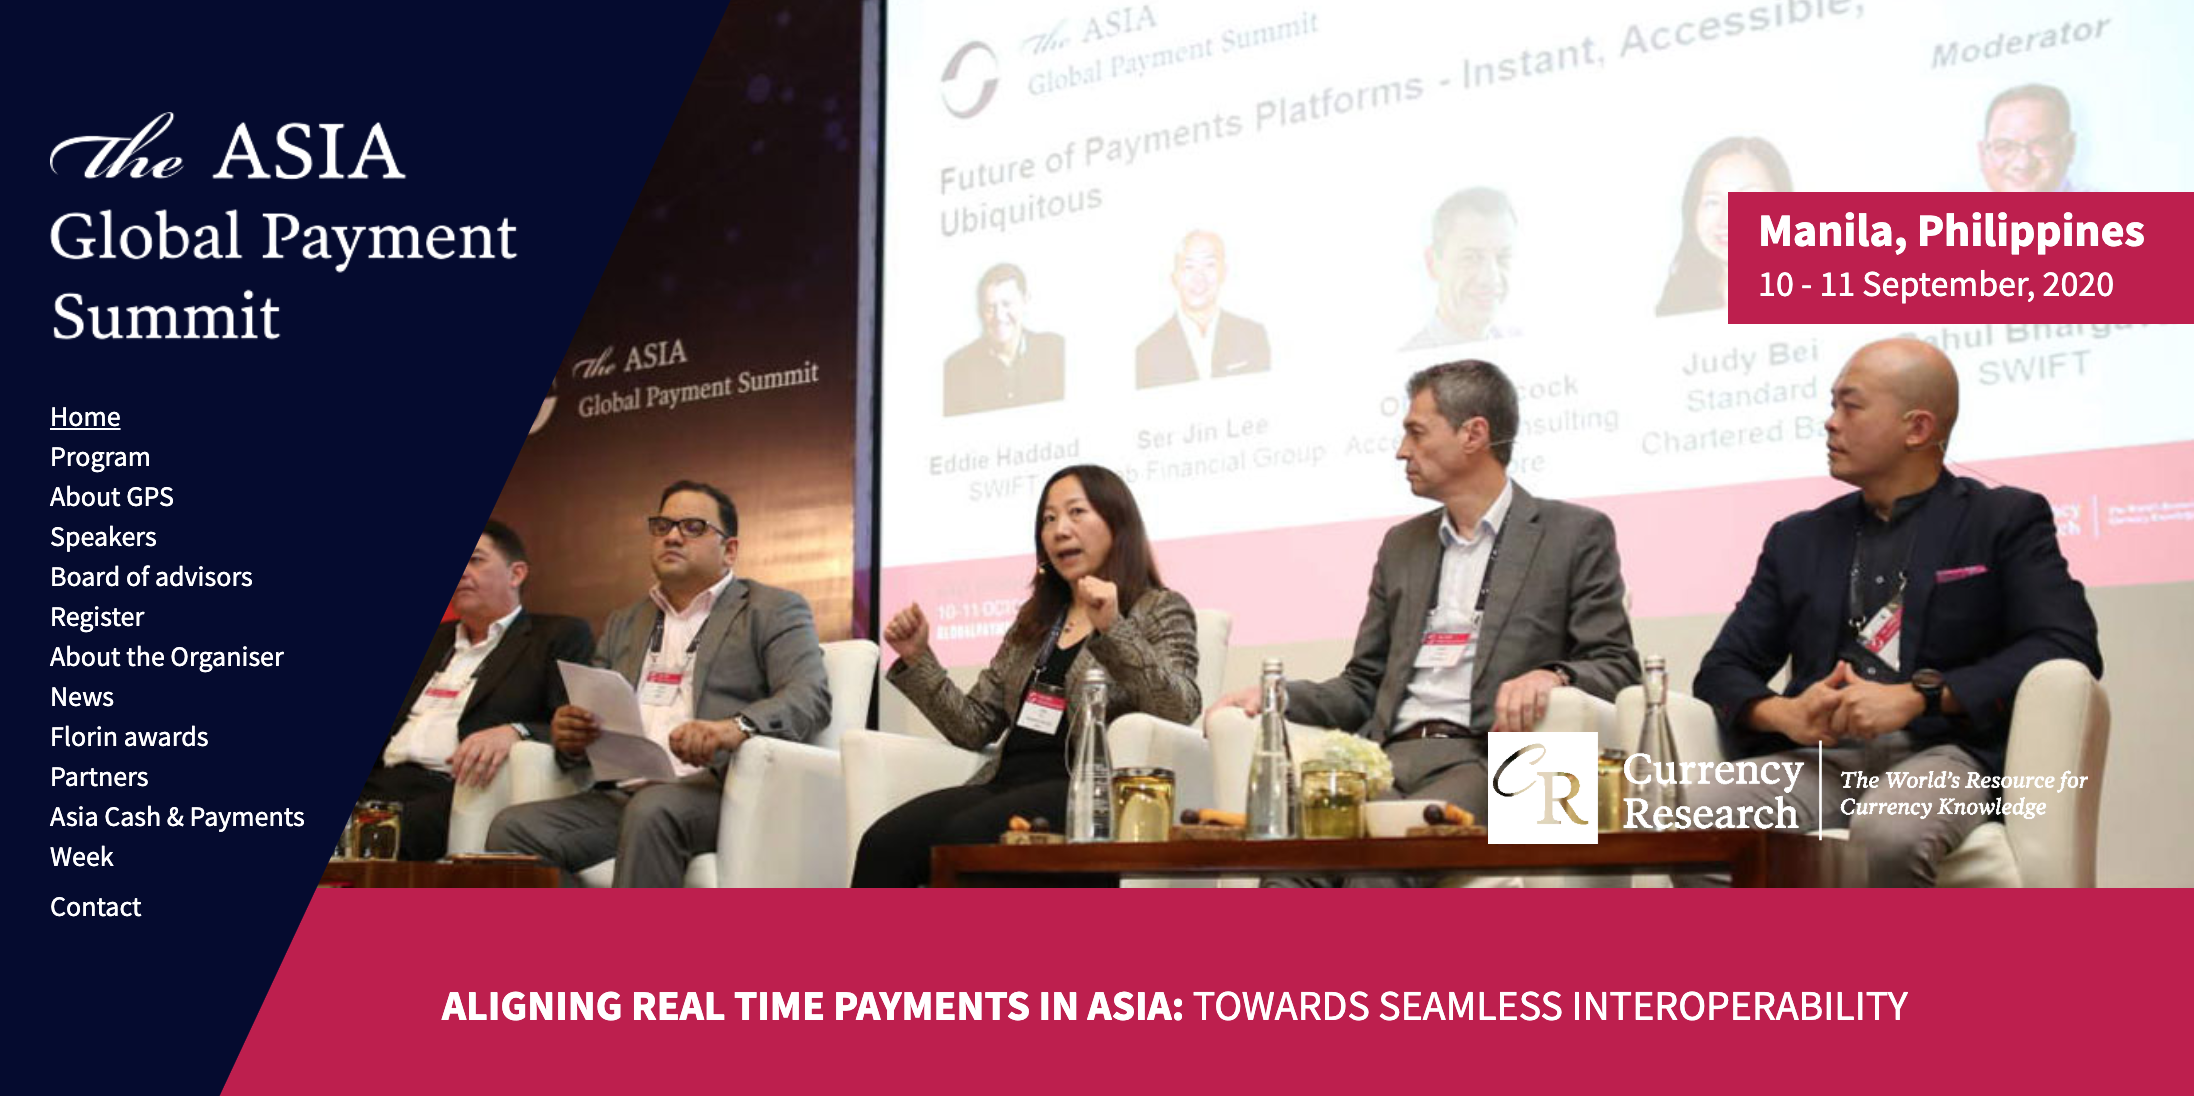 The Asia Global Payment Summit 2020